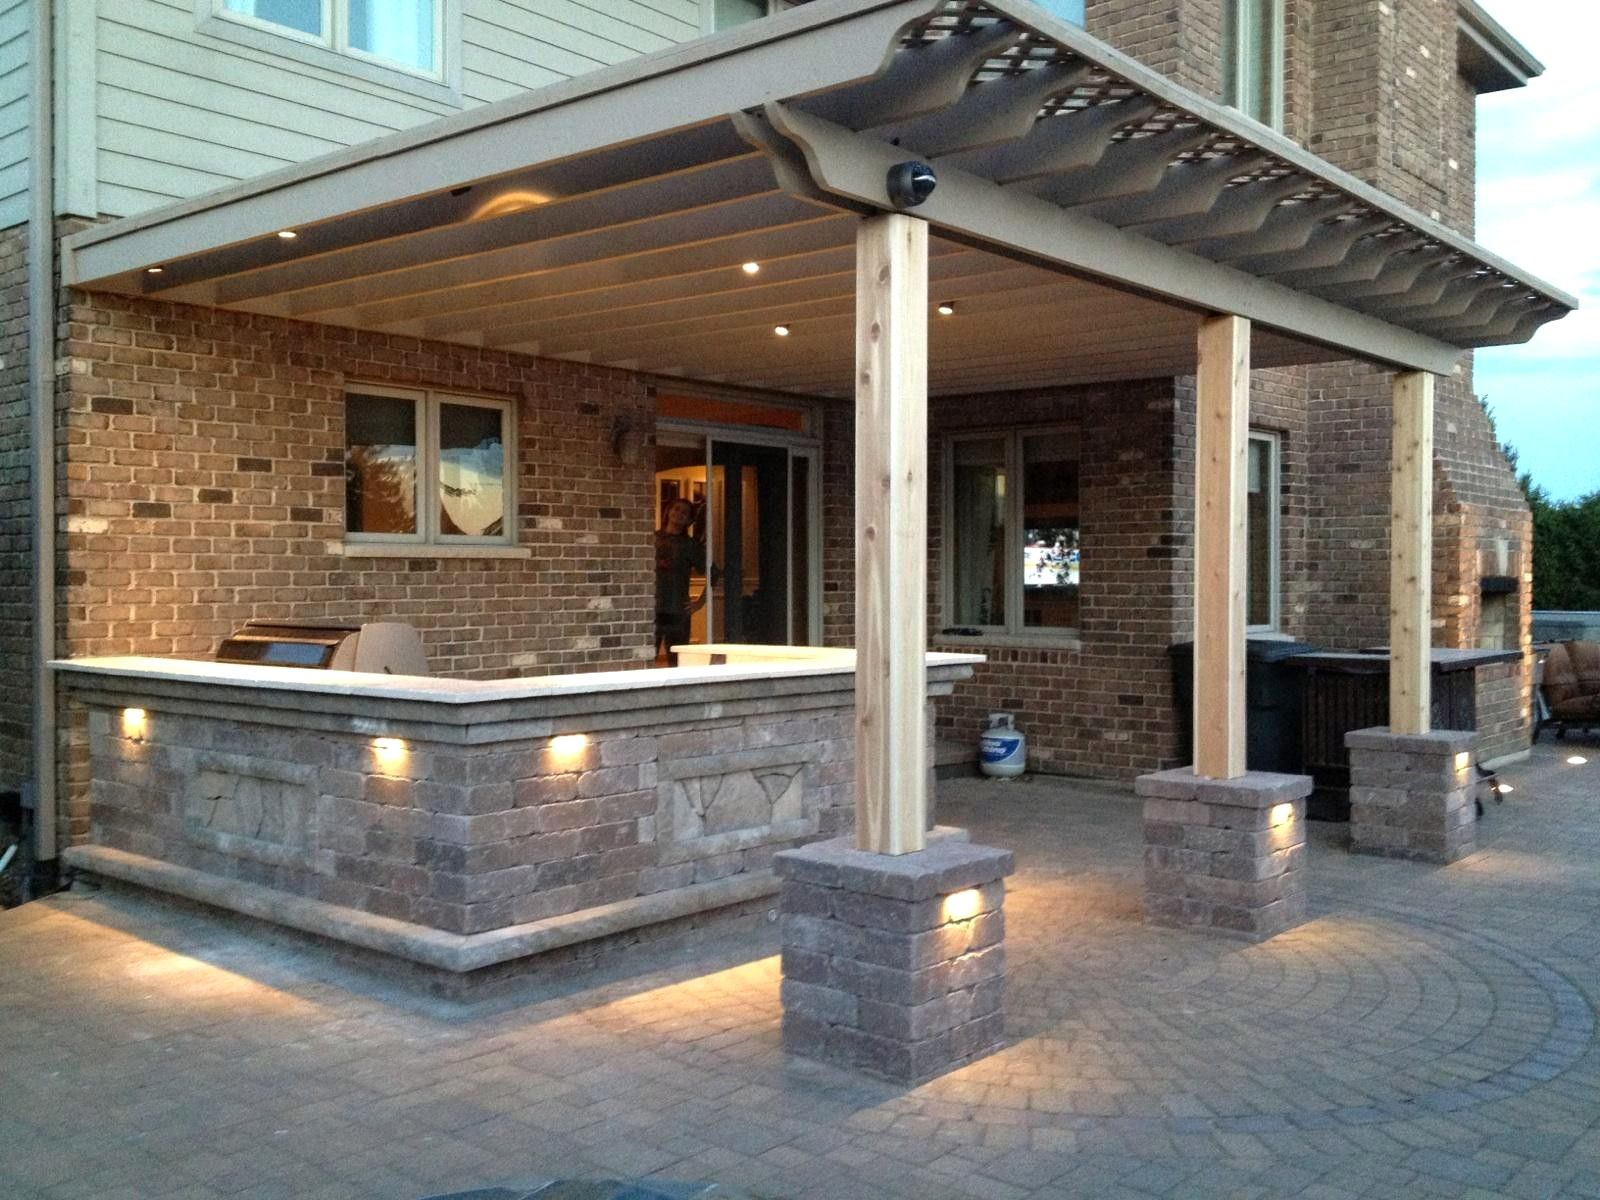 Outdoor kitchen areas have long been prominent in the cozy